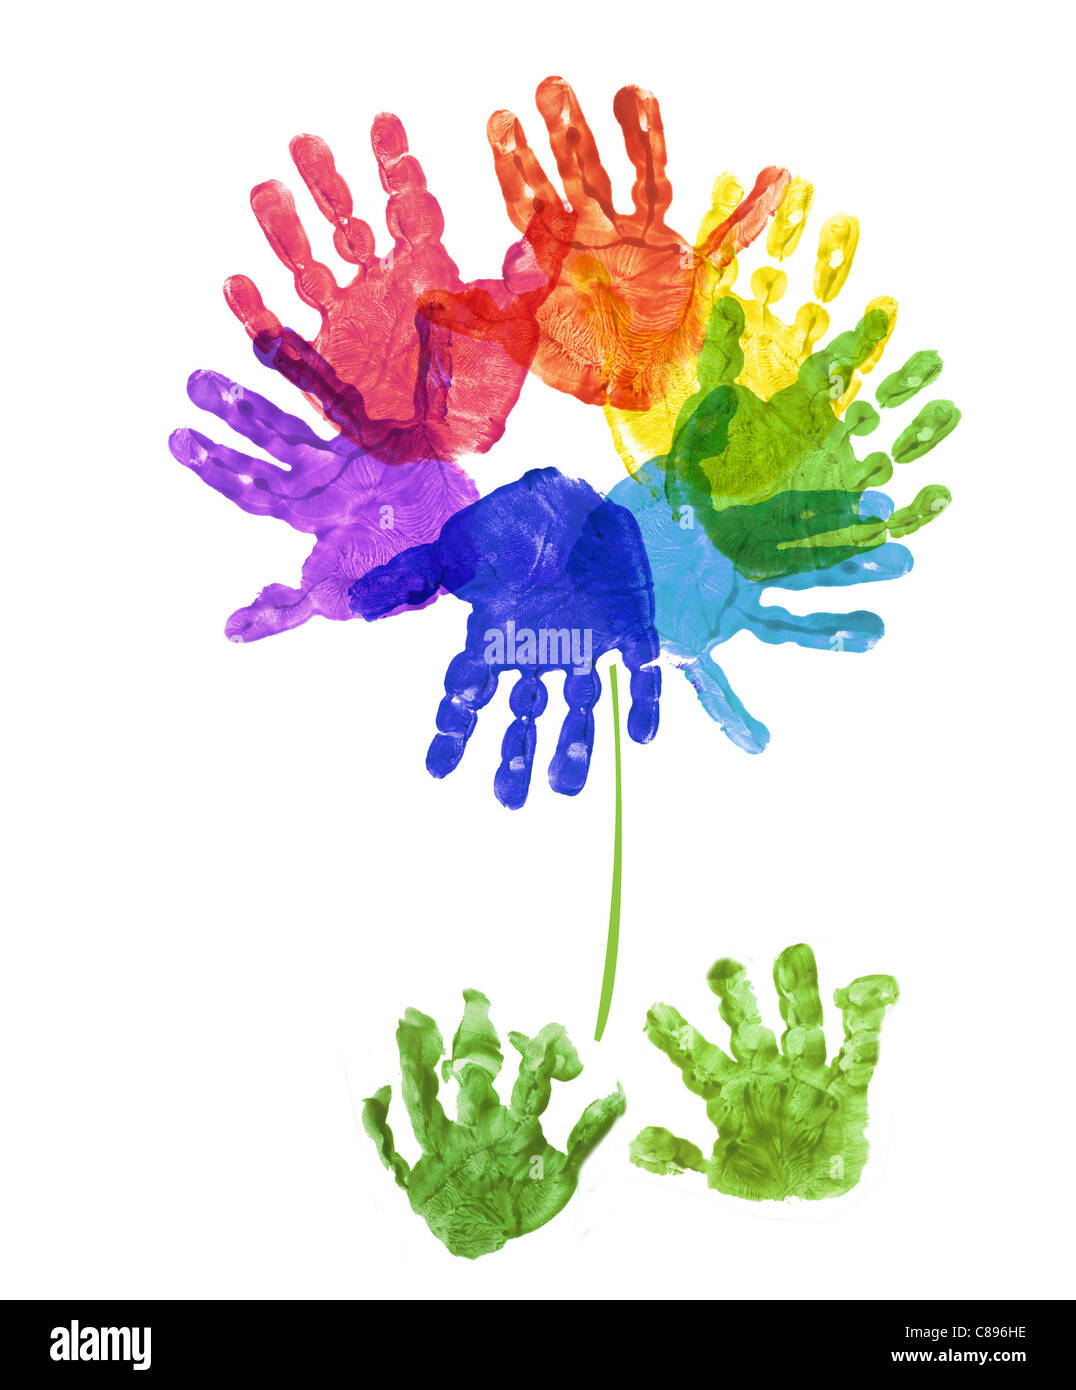 a flower made out of child's hand prints in rainbow colors on a white background Stock Photo